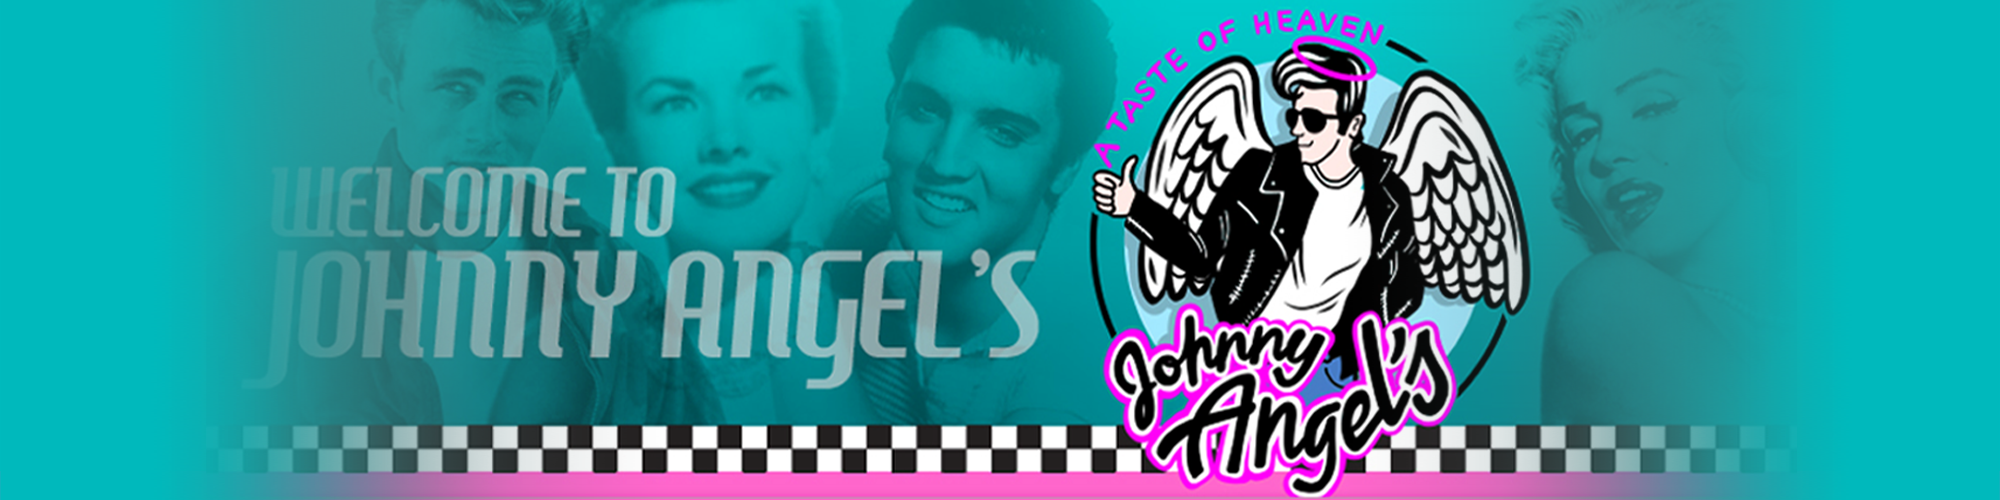 Johnny Angel's Banner